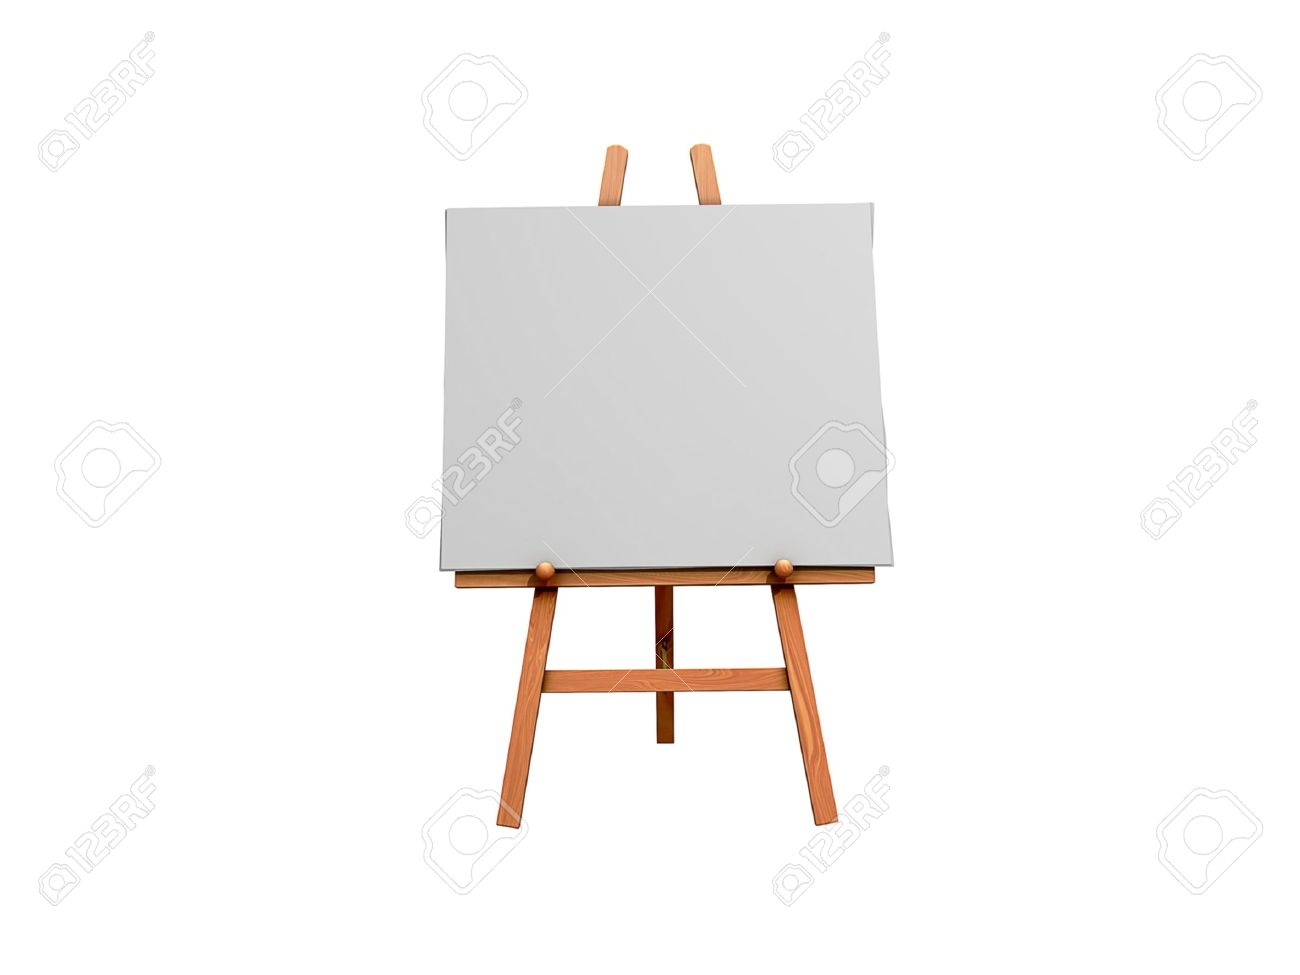 Isolated 3d Image Of An Art Easel And Blank Canvas Stock Photo